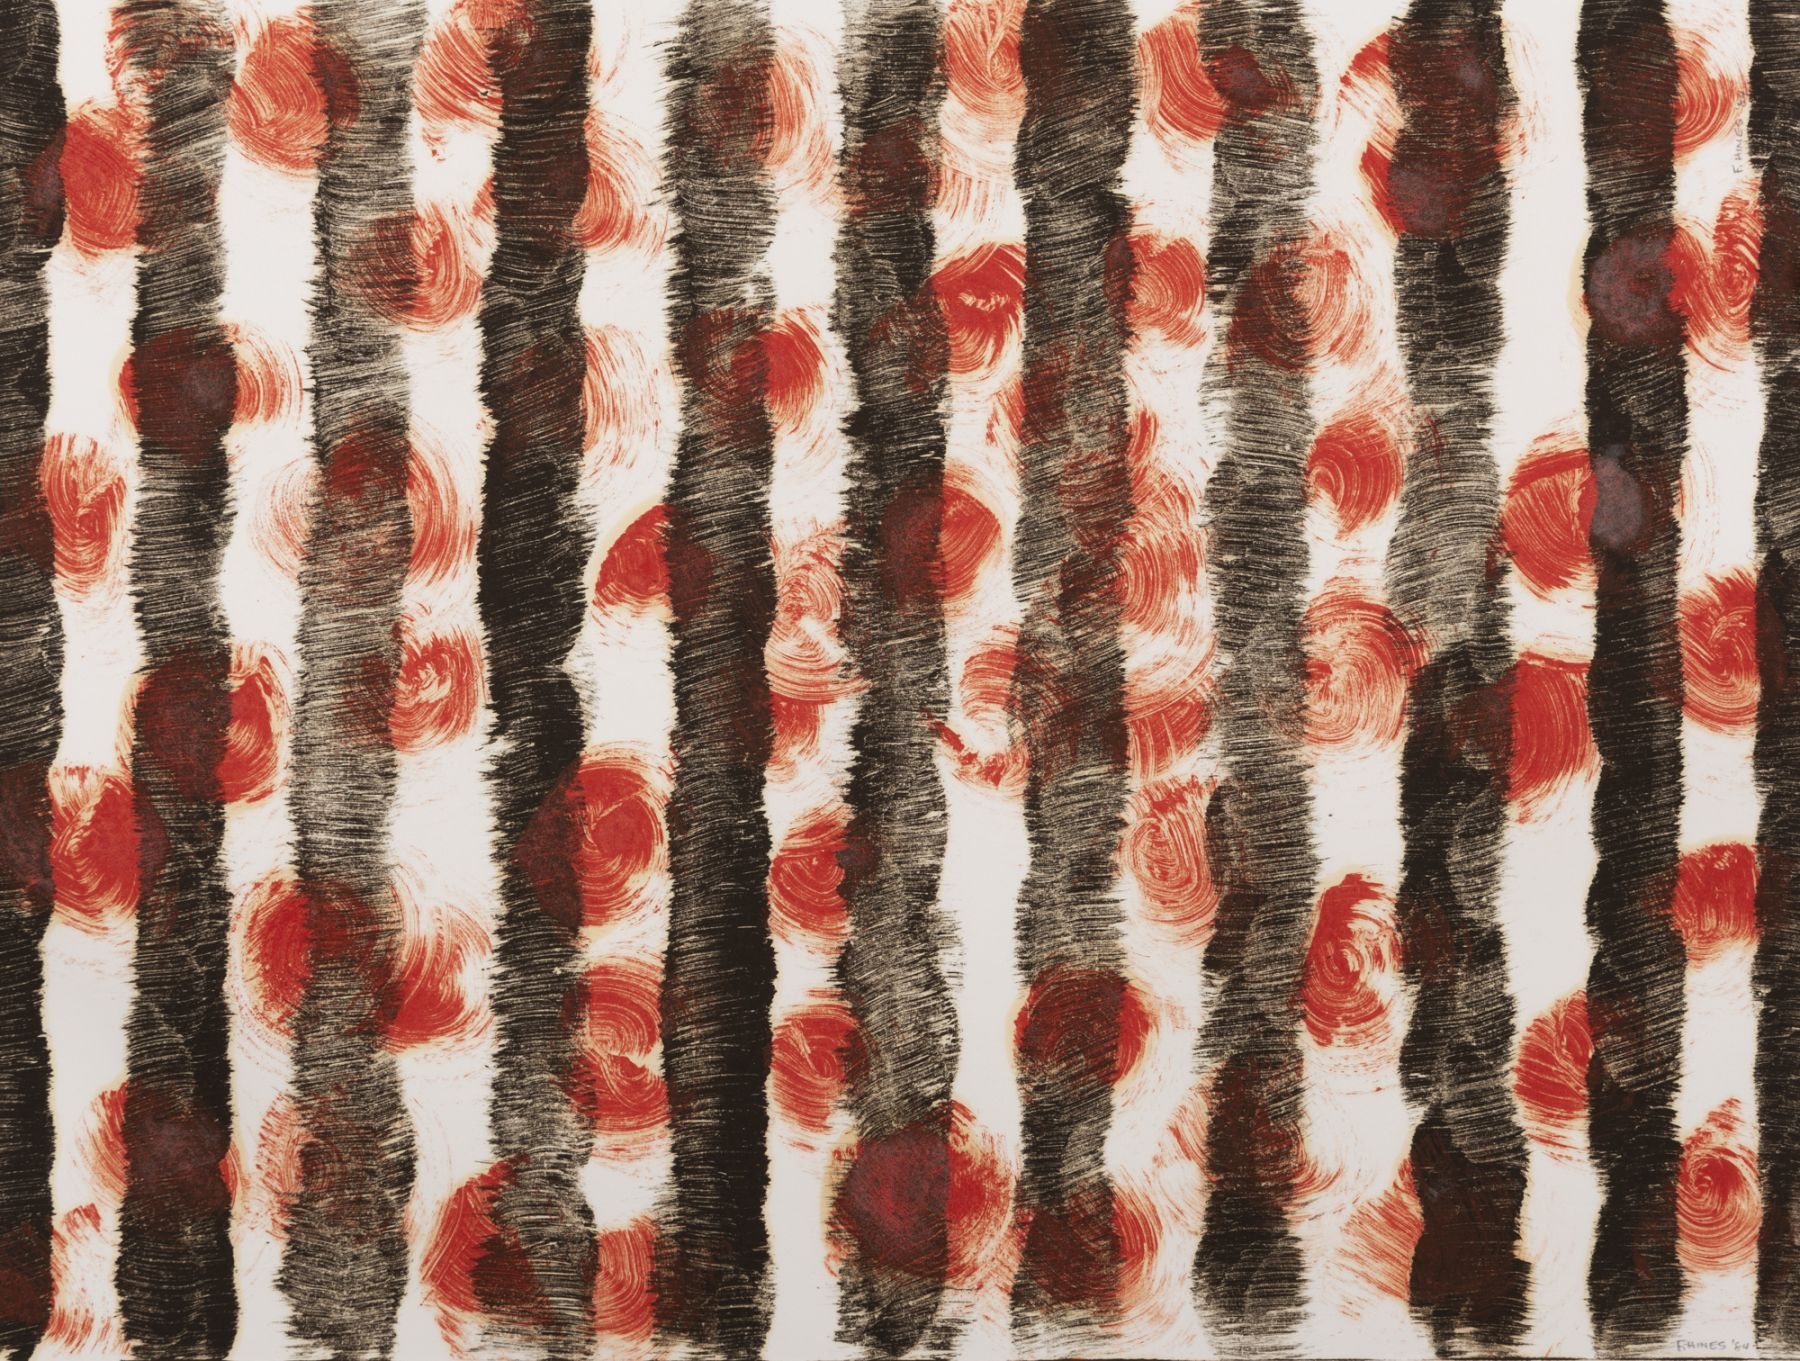 Felrath Hines, Black Verticals with Red Monotype, 1984,  Monotype, 18 x 24 inches. Black vertical marks with red dots. Felrath Hines worked to create universal visual idioms from a place of complex personal experience. His figurative and cubist-style artwork morphed into soft-edged organic abstracts as he grappled with hues in his chosen oil medium.